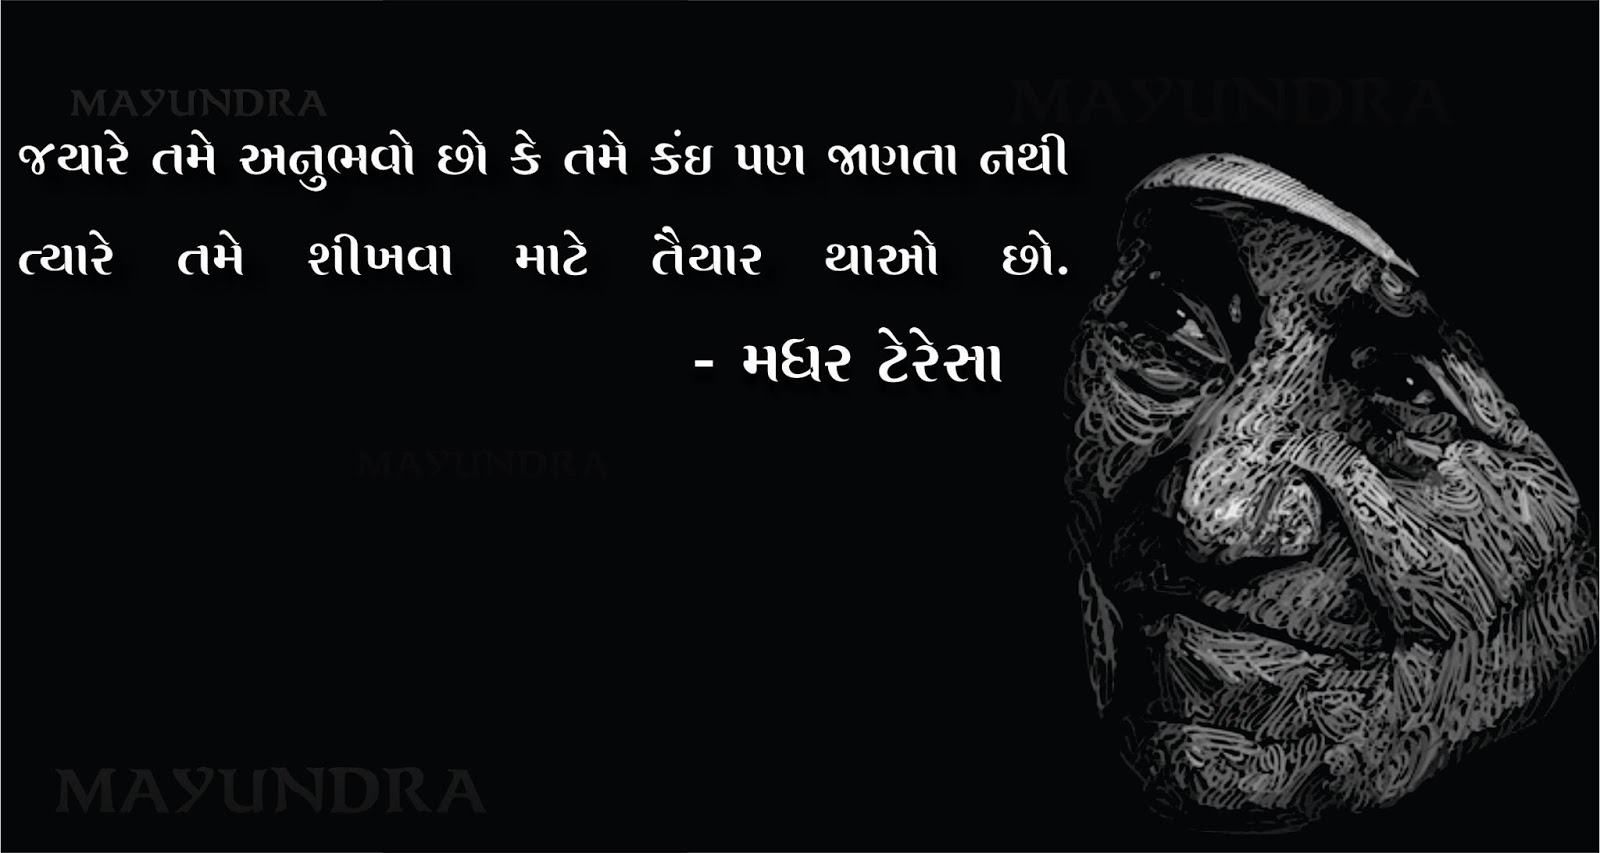 Gujarati Quotes Mother Teresa Quotes India Quotes Health Tips